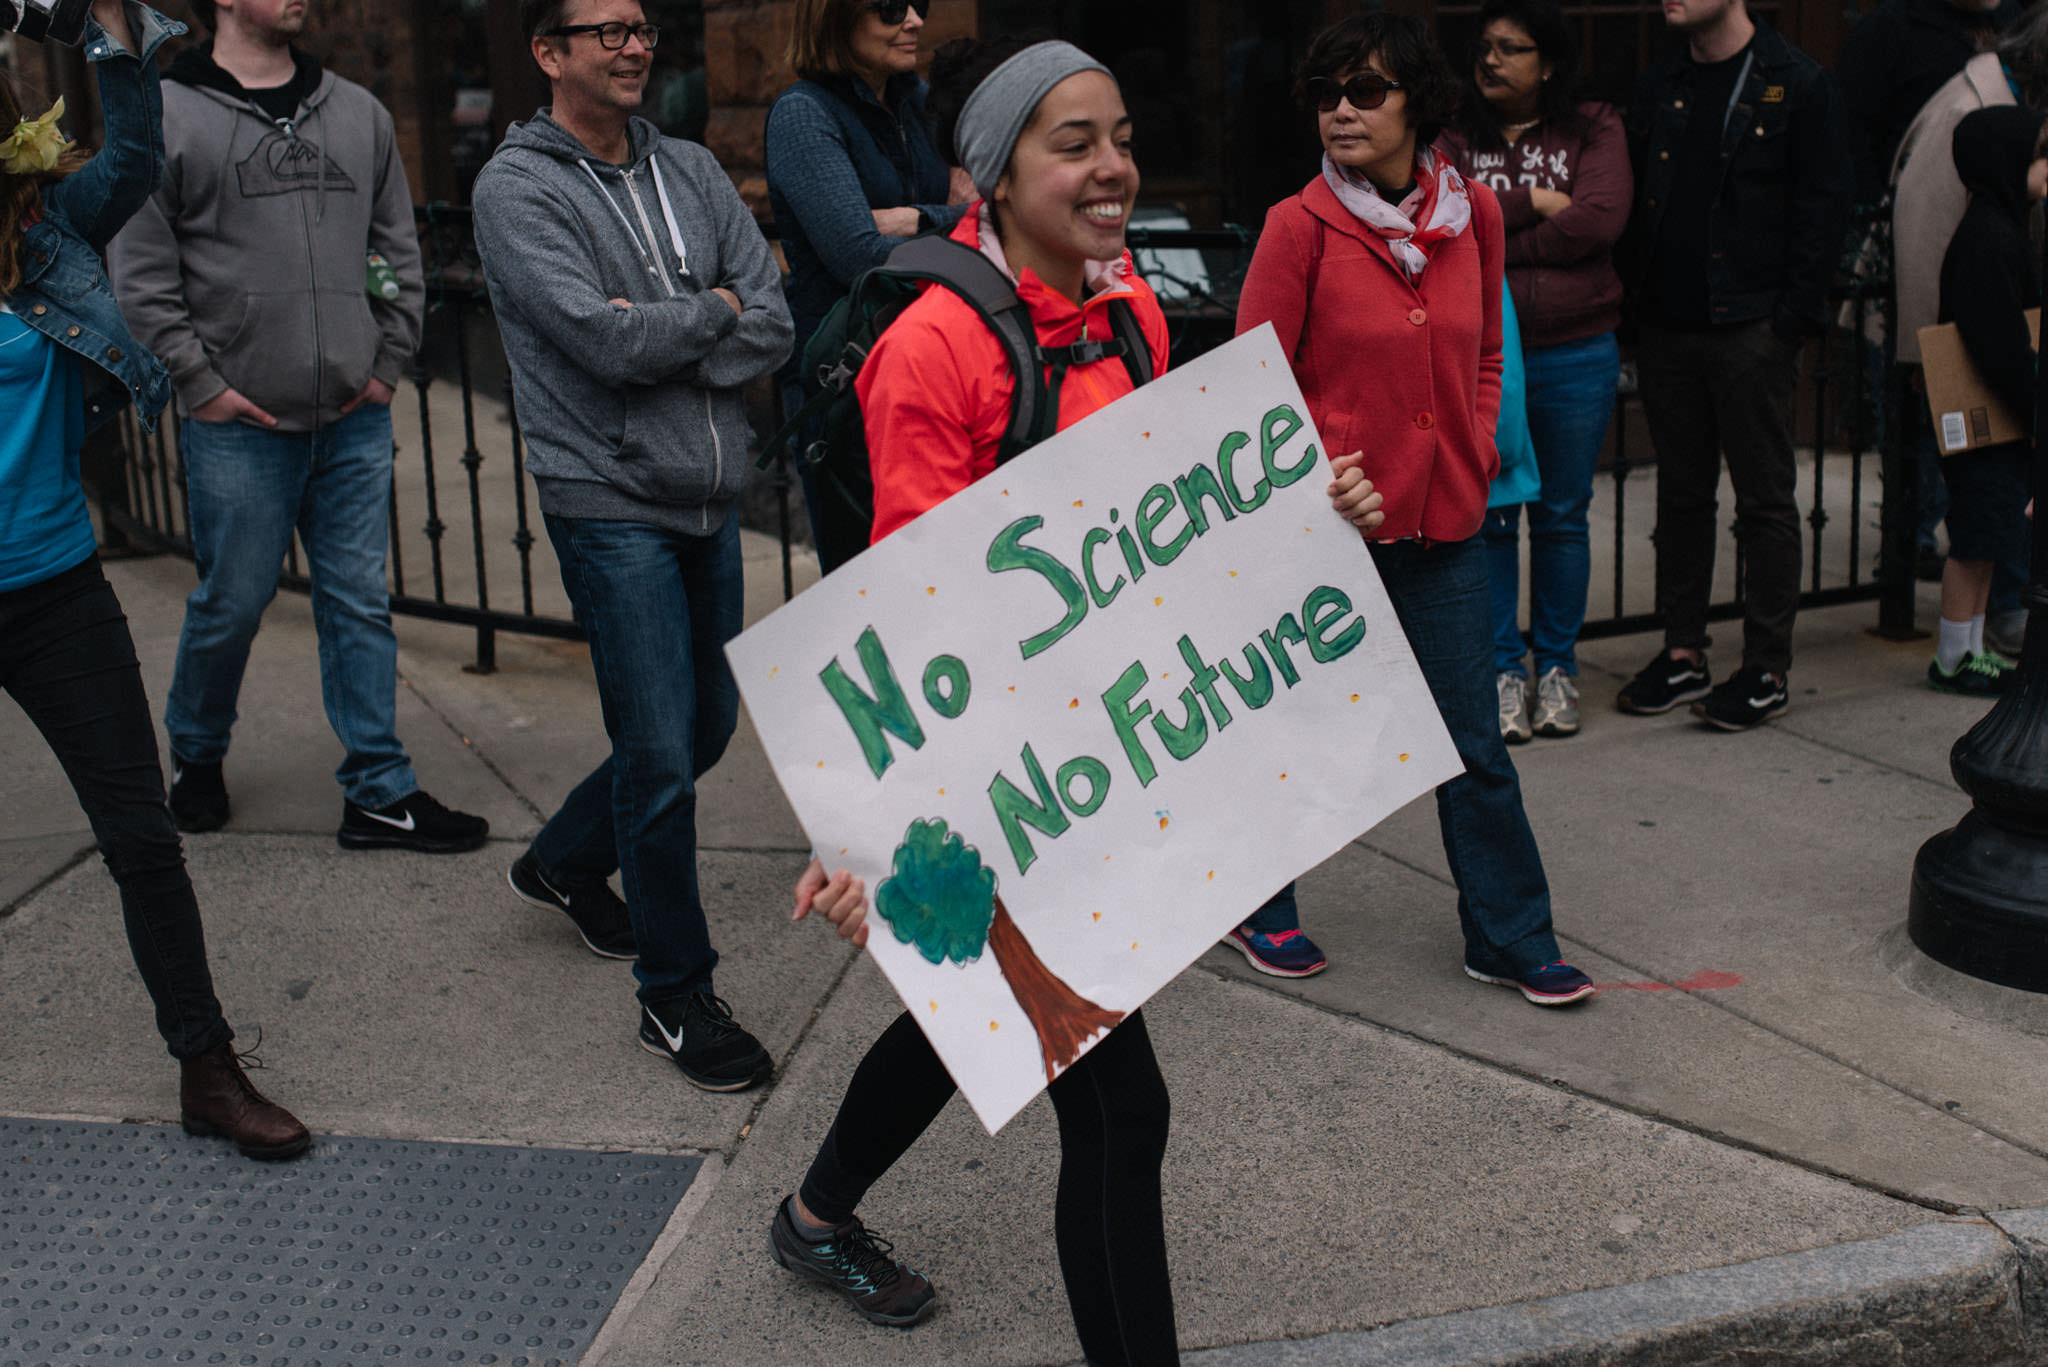 march-for-science-albany-ny-2017-059